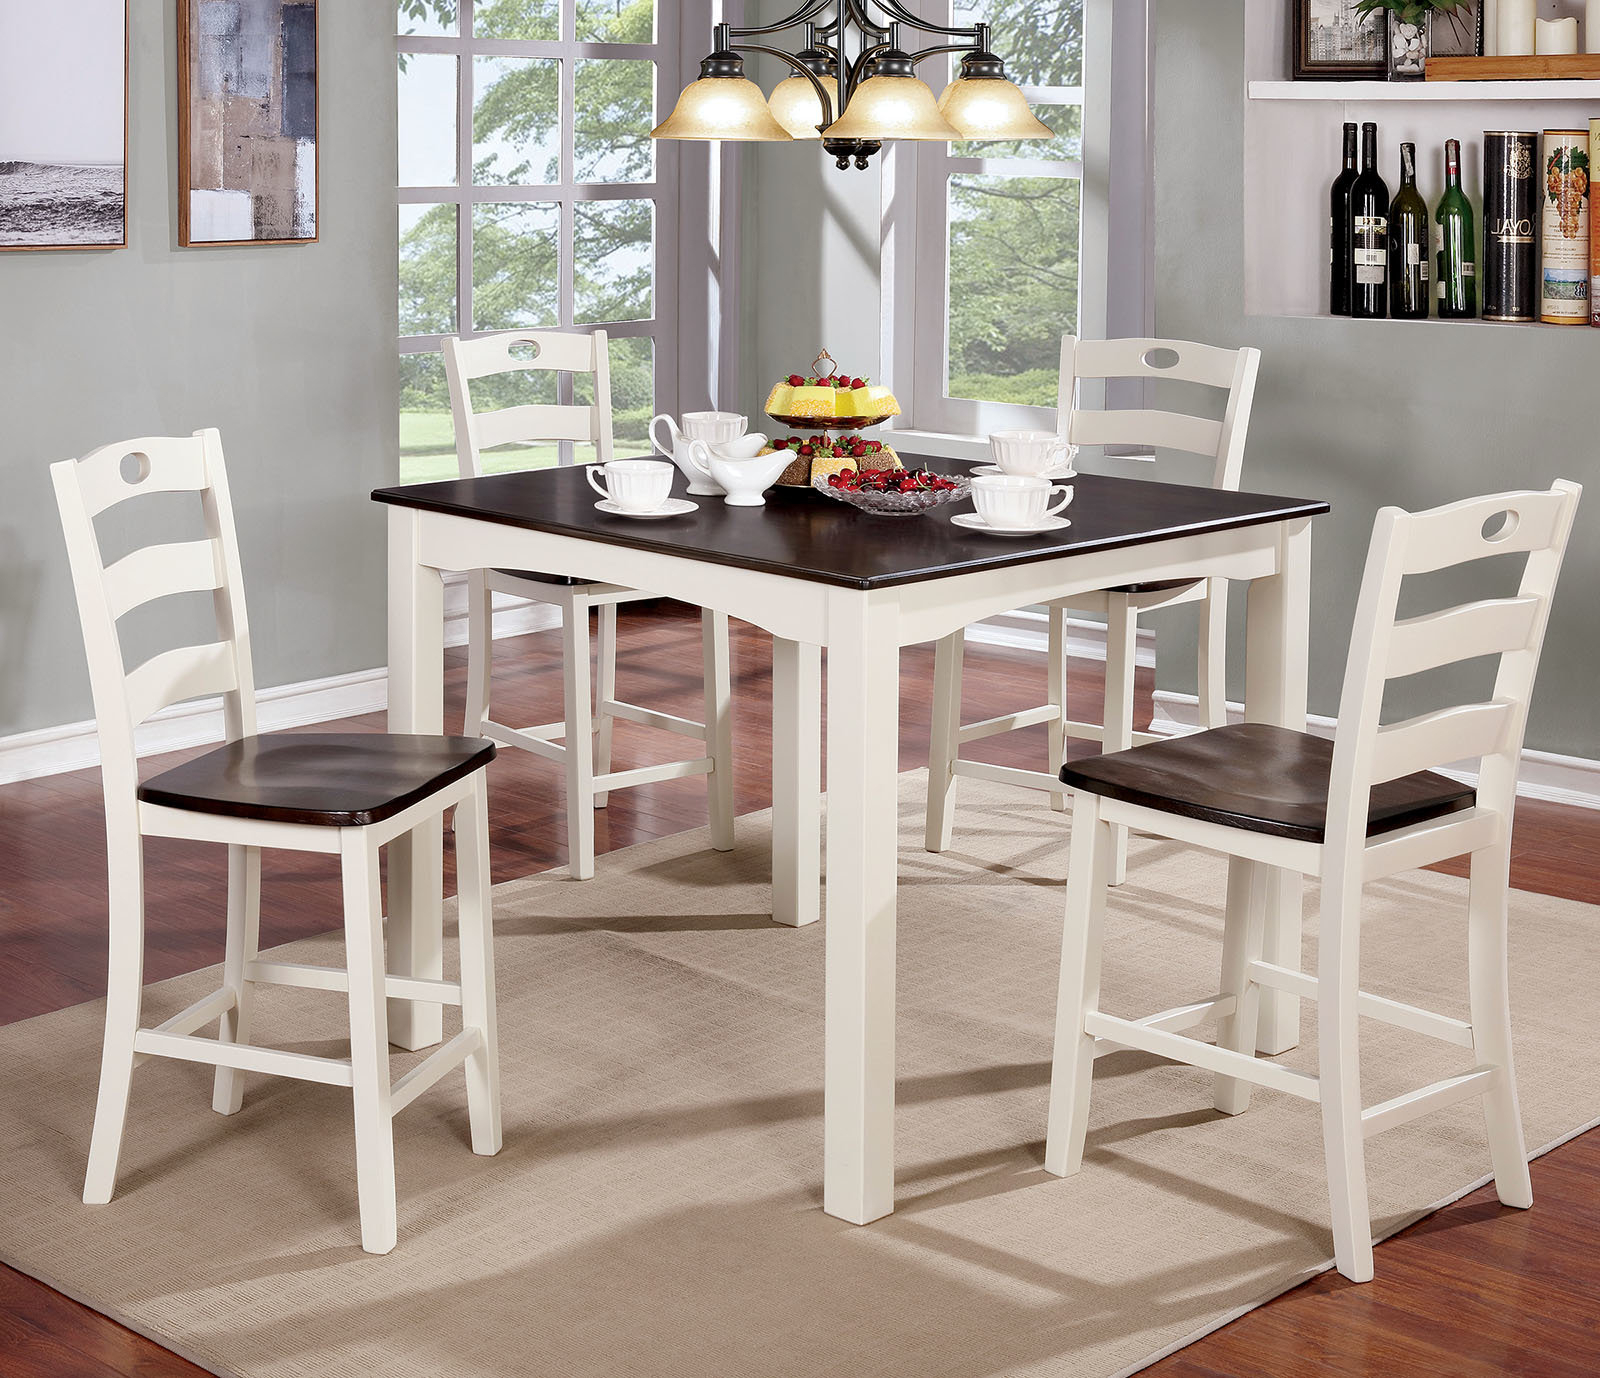 Hanska Wooden 5 Piece Counter Height Dining Table Sets (Set Of 5) Within Popular Red Barrel Studio Harkins Wooden 5 Piece Counter Height Dining Table (Gallery 6 of 25)